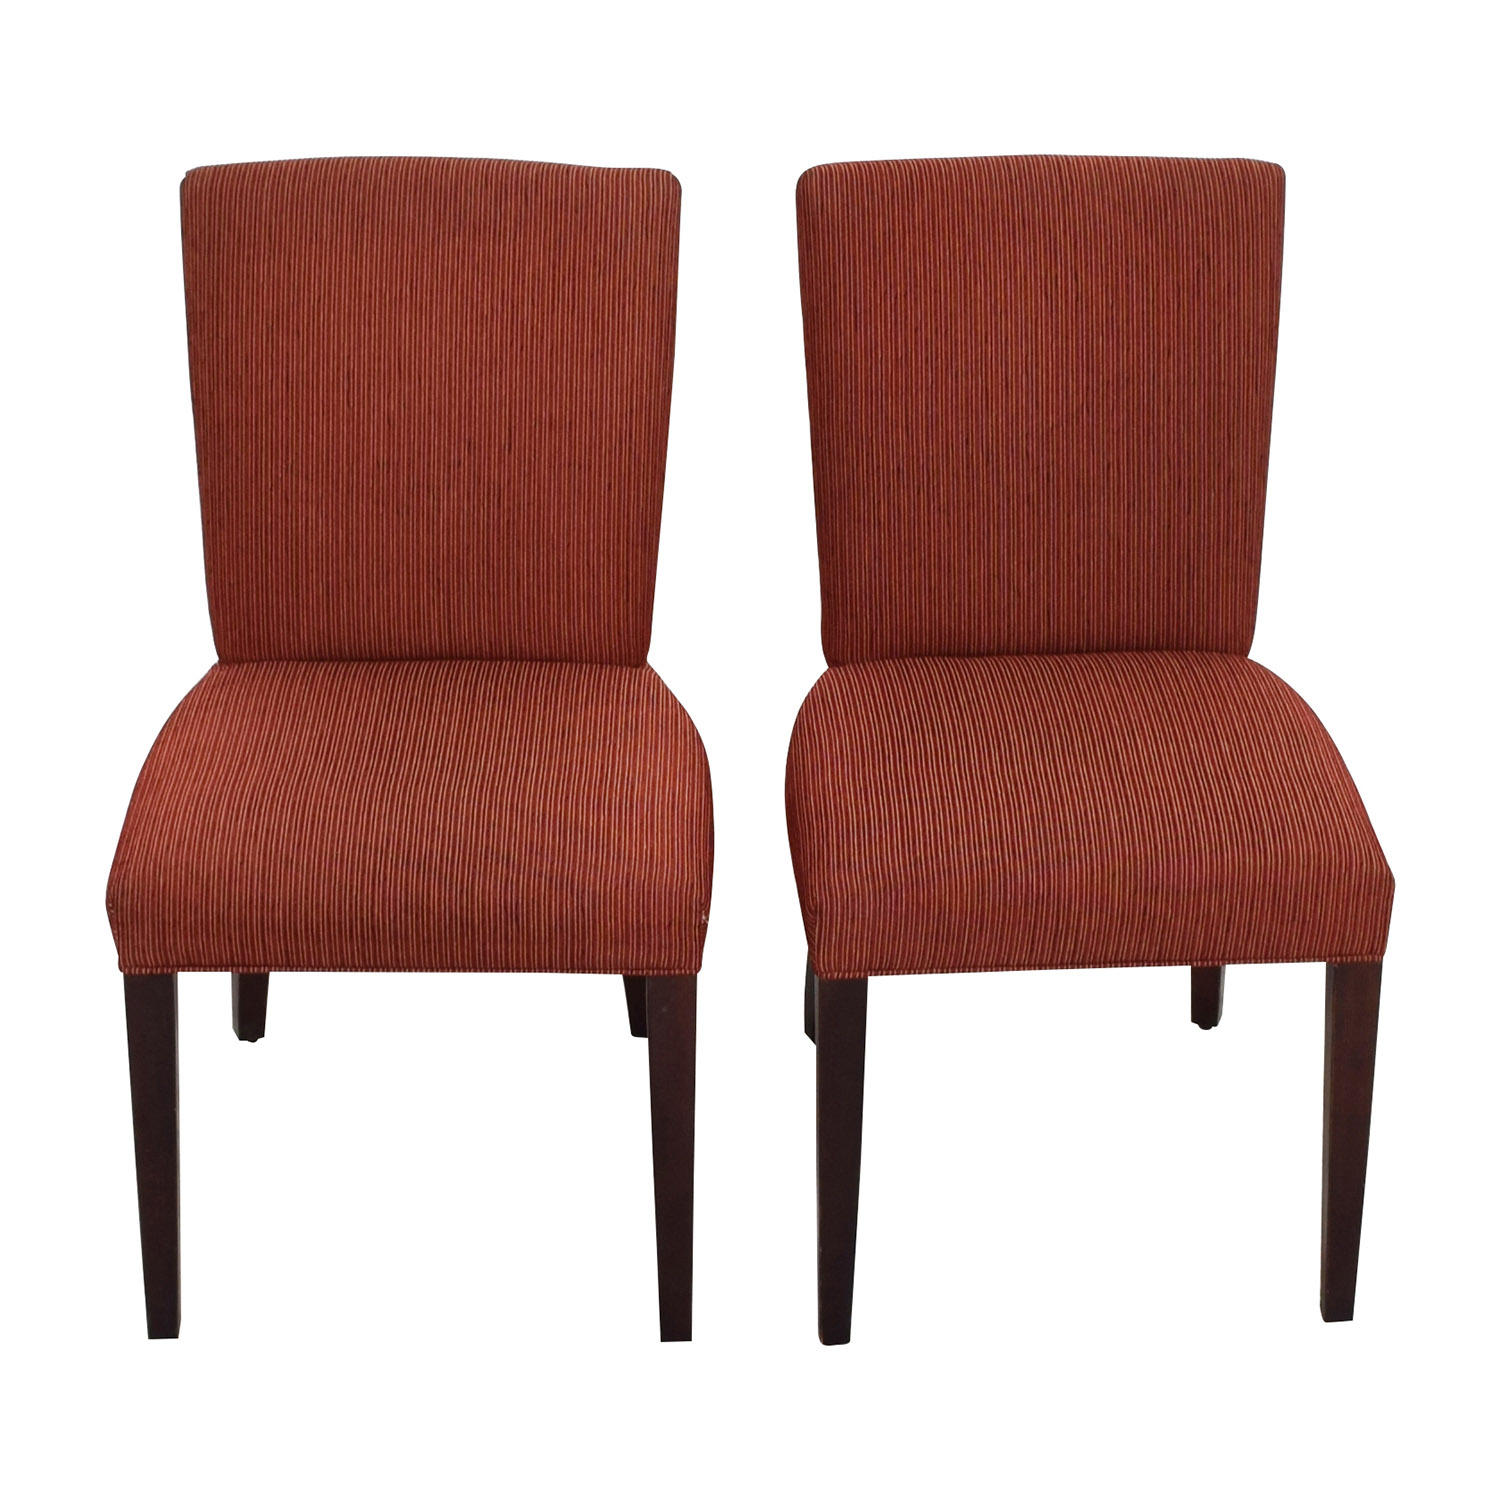 Room Board Anssel Rust Dining Chairs Second Hand